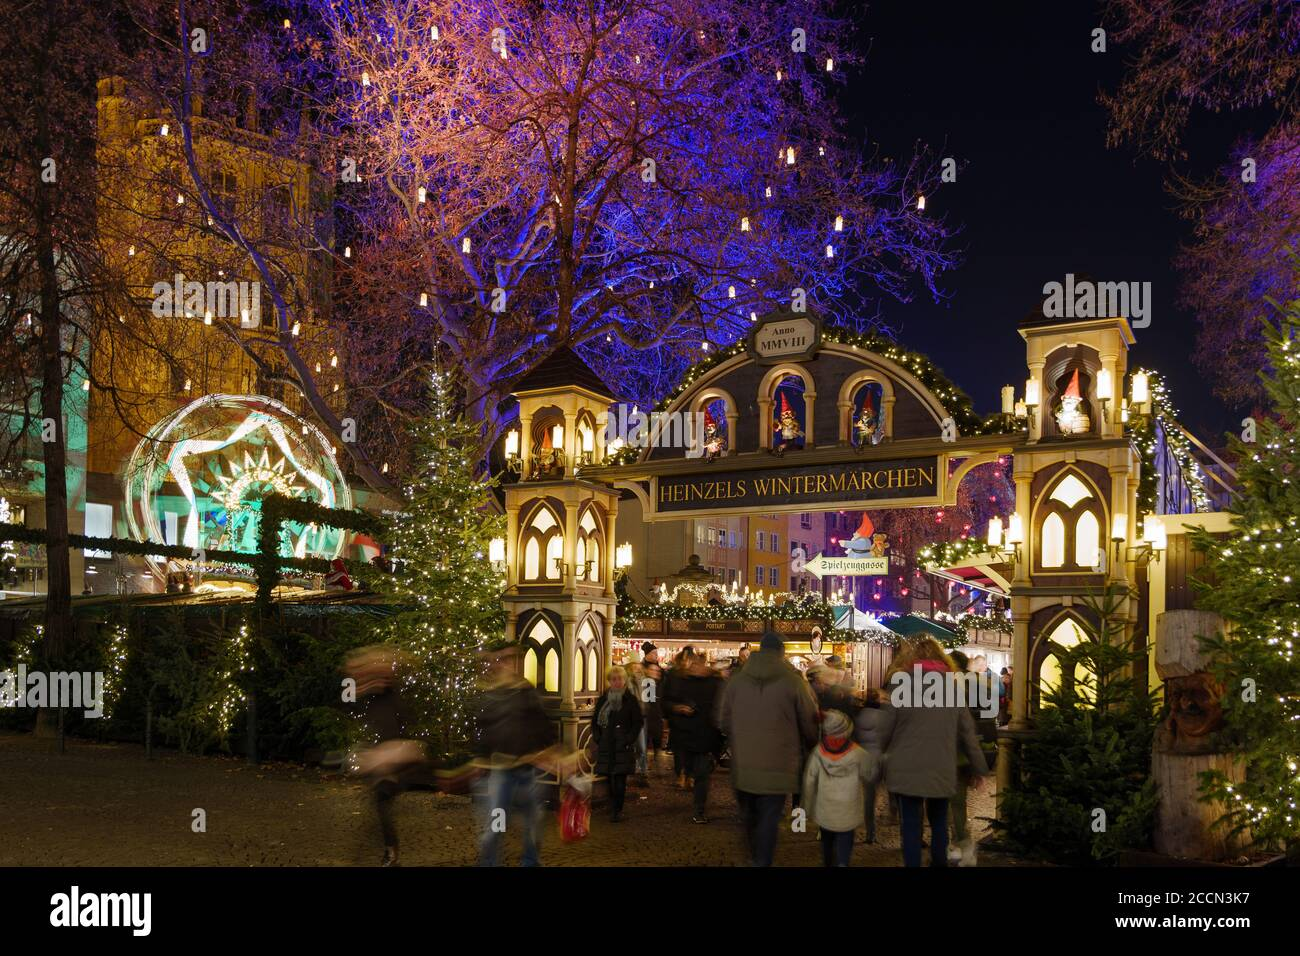 Night scenery, beautiful arched entrance of Weihnachtsmarkt, Christmas Market in Köln, at Alter Markt, famous marketplace nearby Cologne city hall. Stock Photo